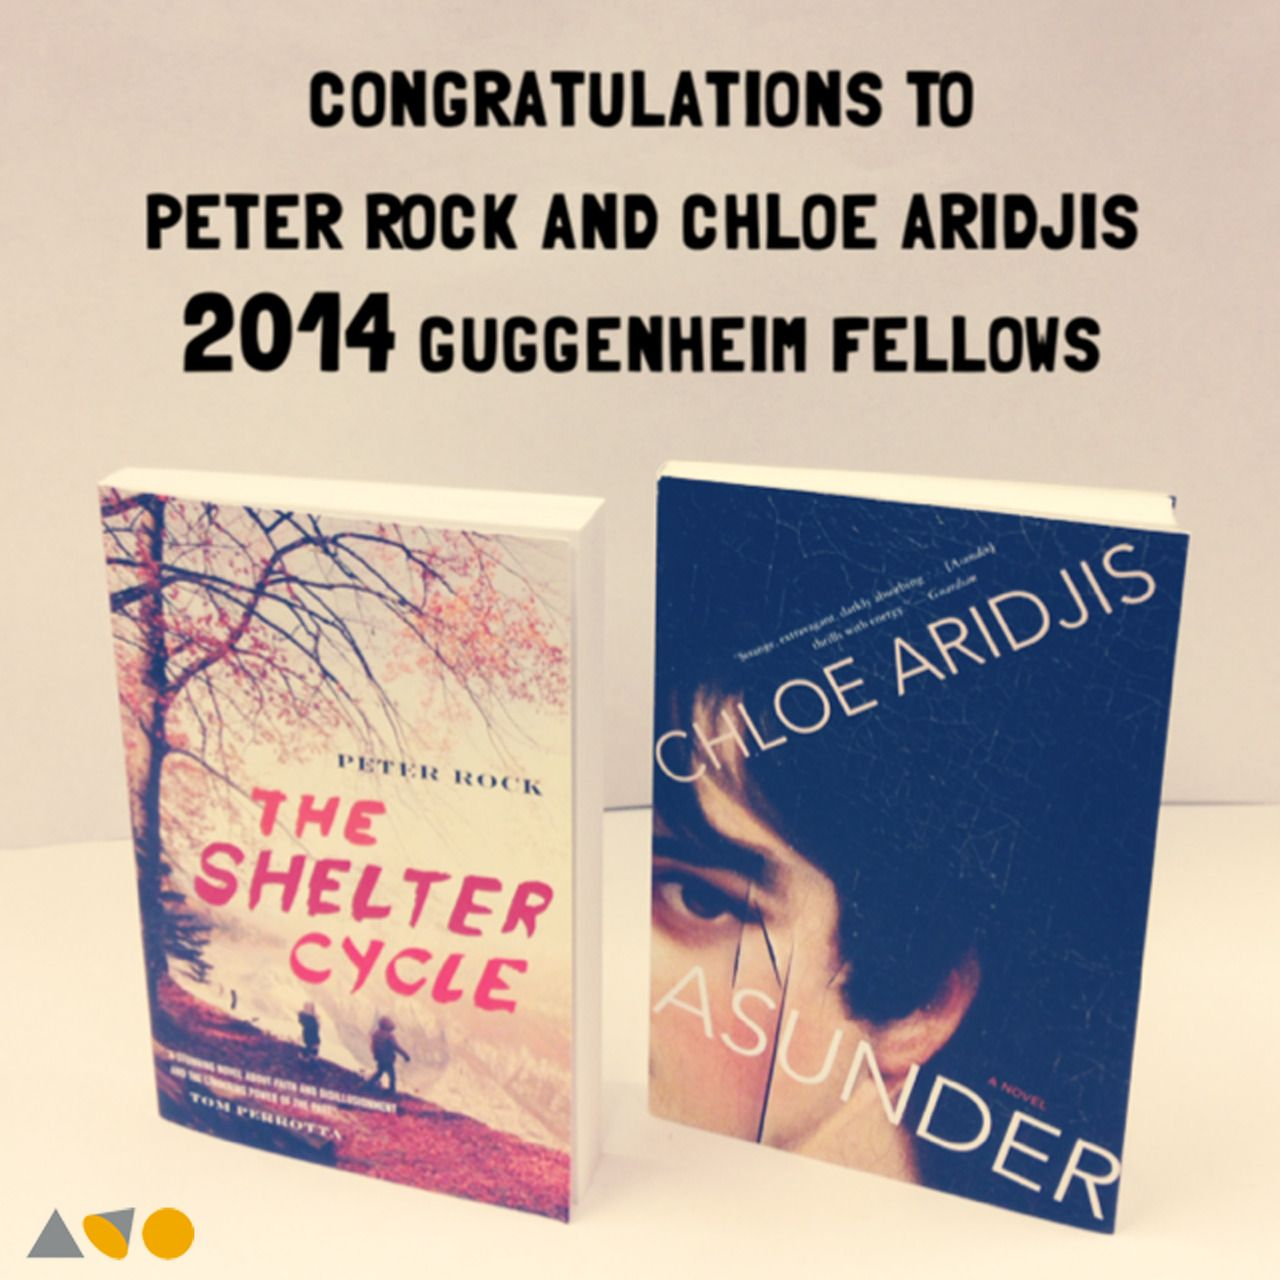 A big congratulations to Guggenheim Fellows Peter Rock (THE SHELTER CYCLE) and Chloe Aridjis (ASUNDER)!